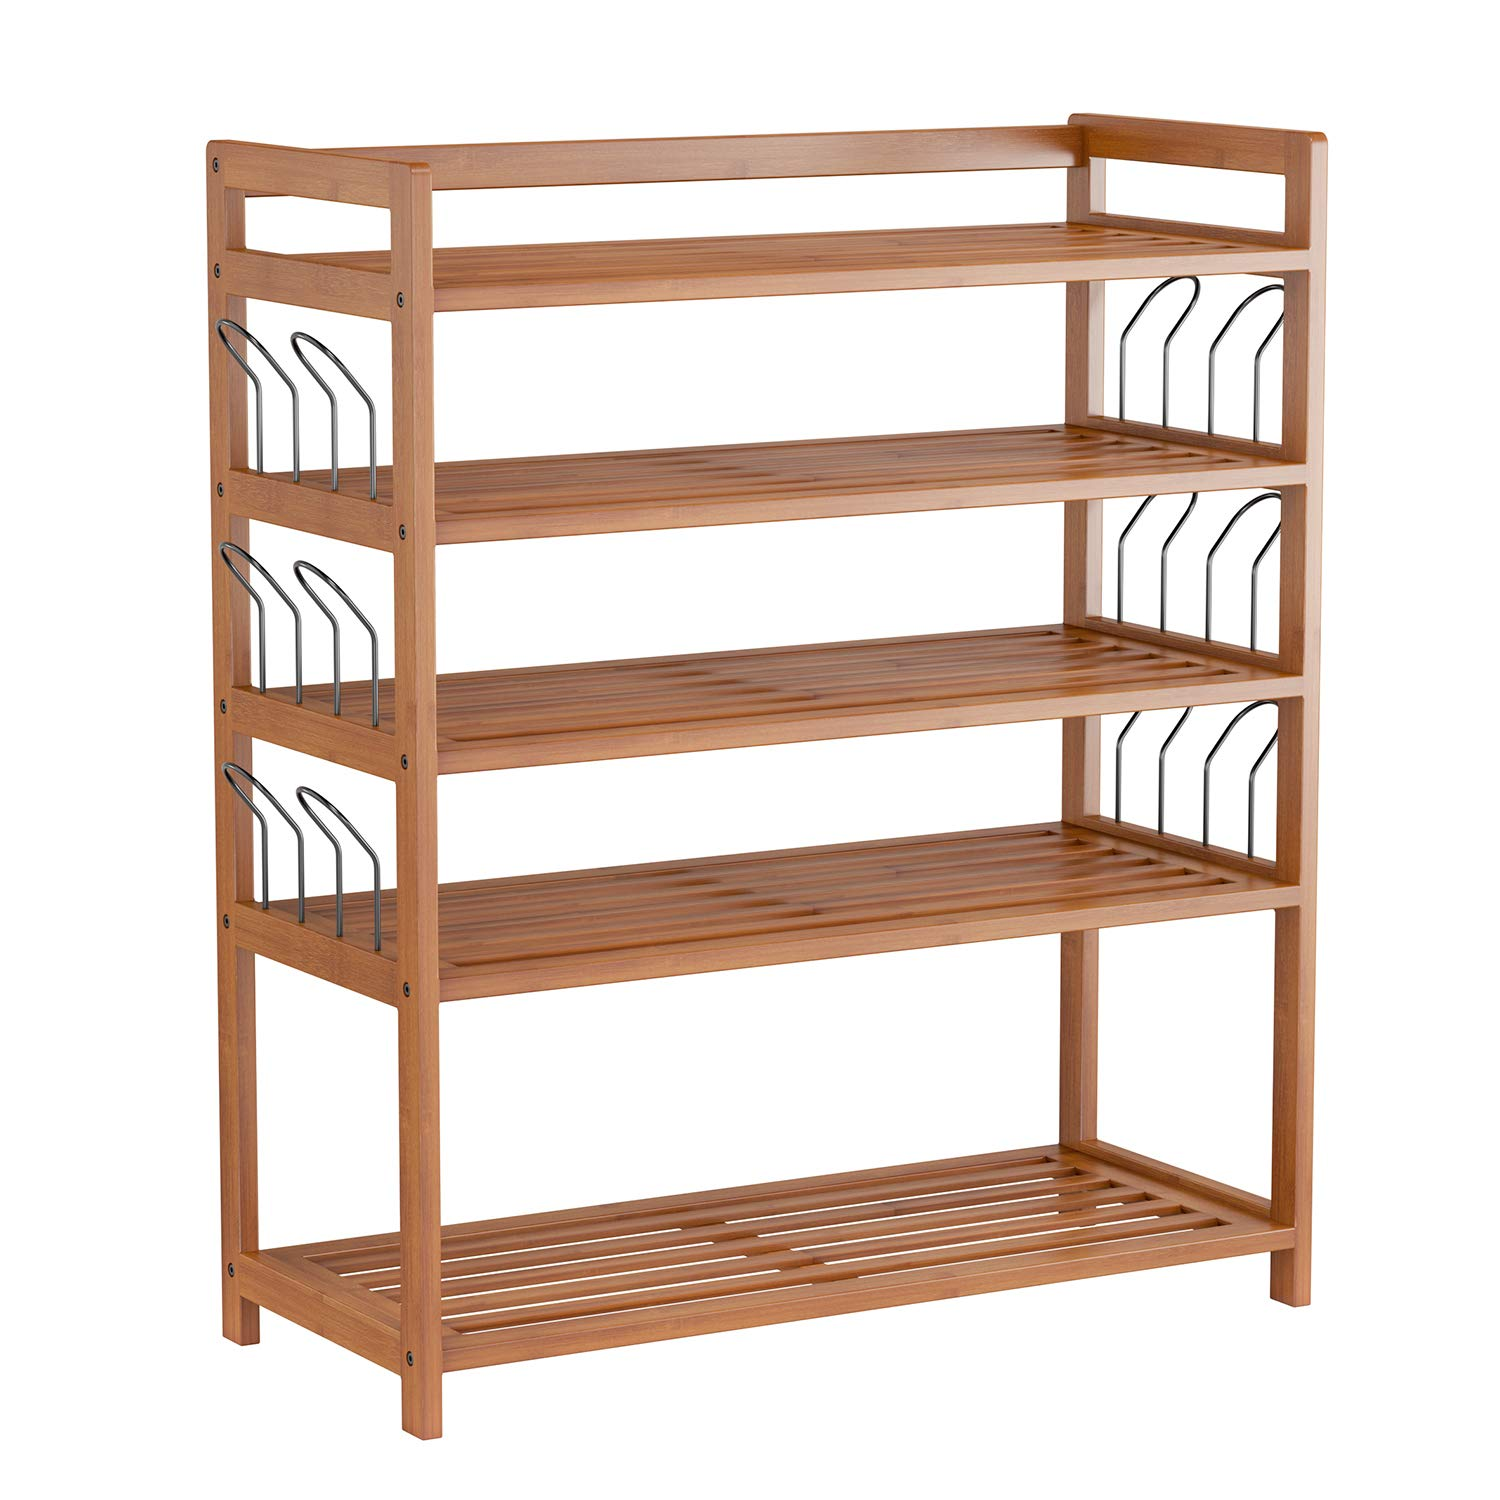 HOMFA Bamboo 5-Tier Shoe Shelf Storage Organizer Entryway Shoe rack, Home Shelf Storage Cabinet for Shoes, Books and Flowerpots, Natural